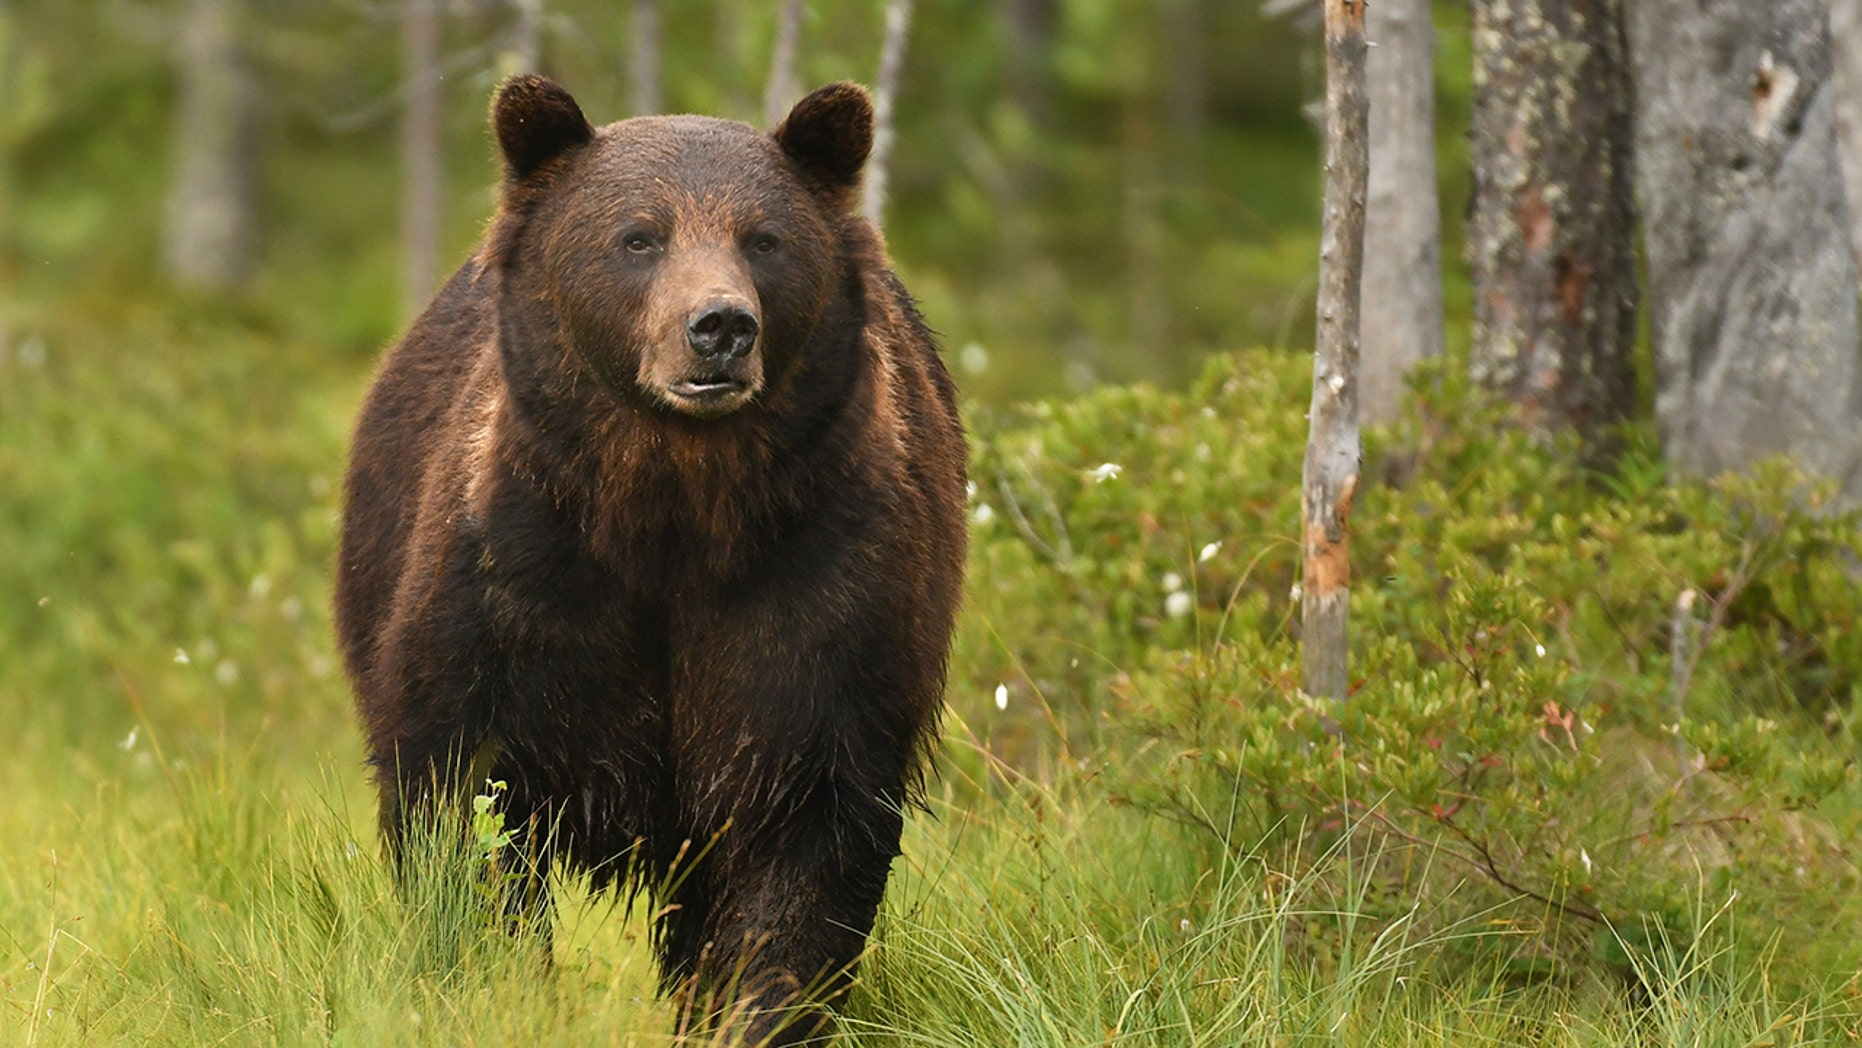 A federal judge is set to rule Thursday on hunting of Yellowstone-area grizzly bears on Thursday.